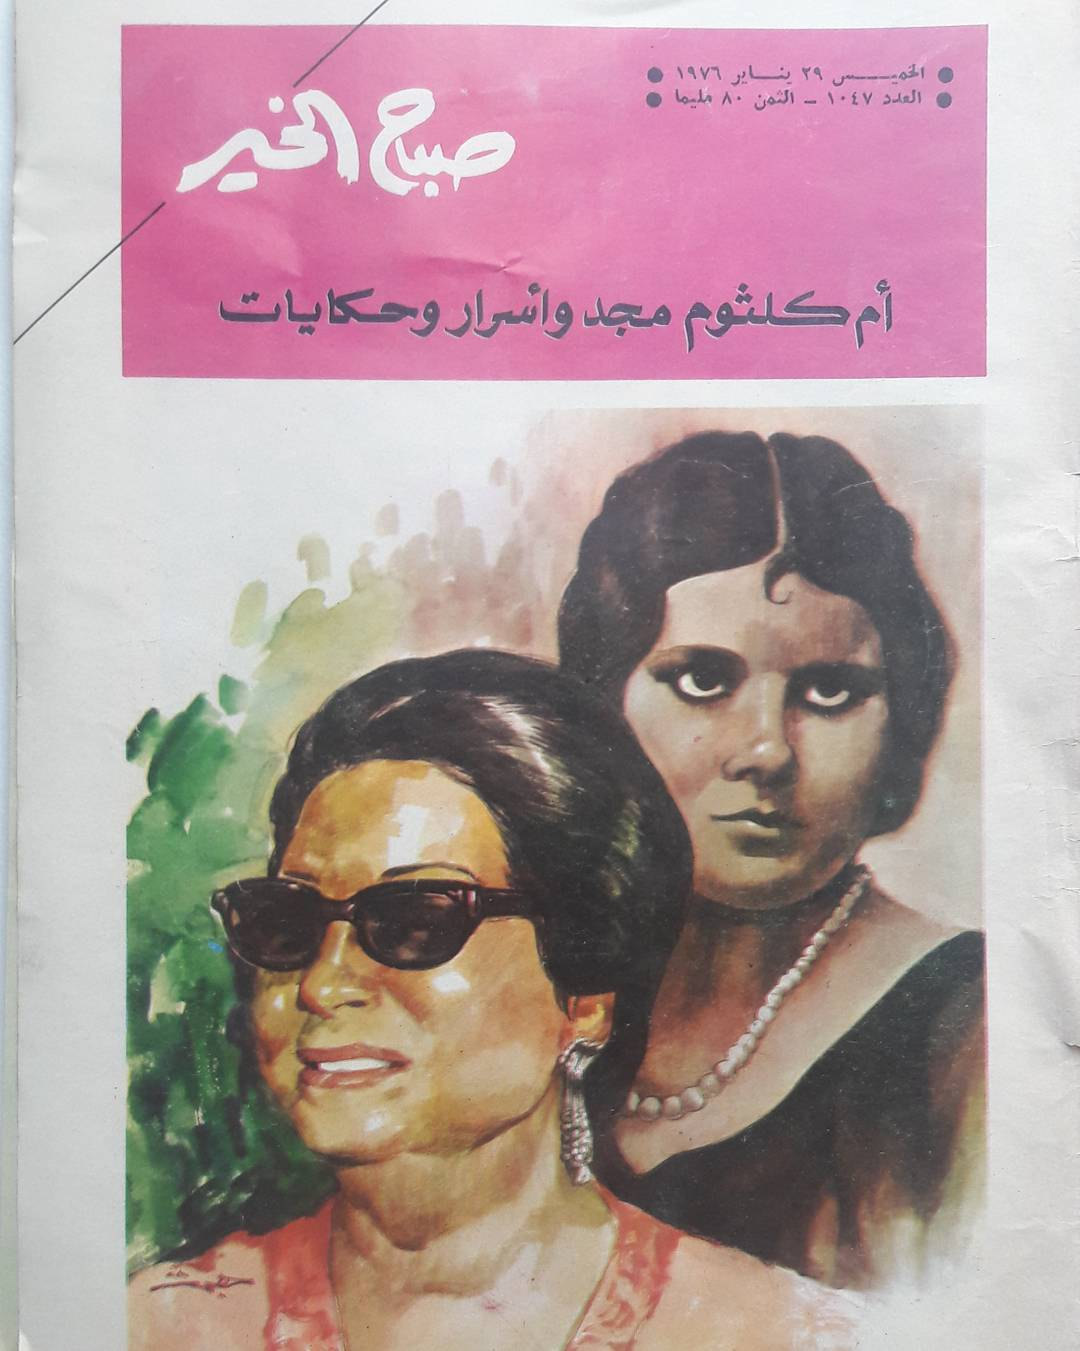 Sabah el kheir issue from 1976